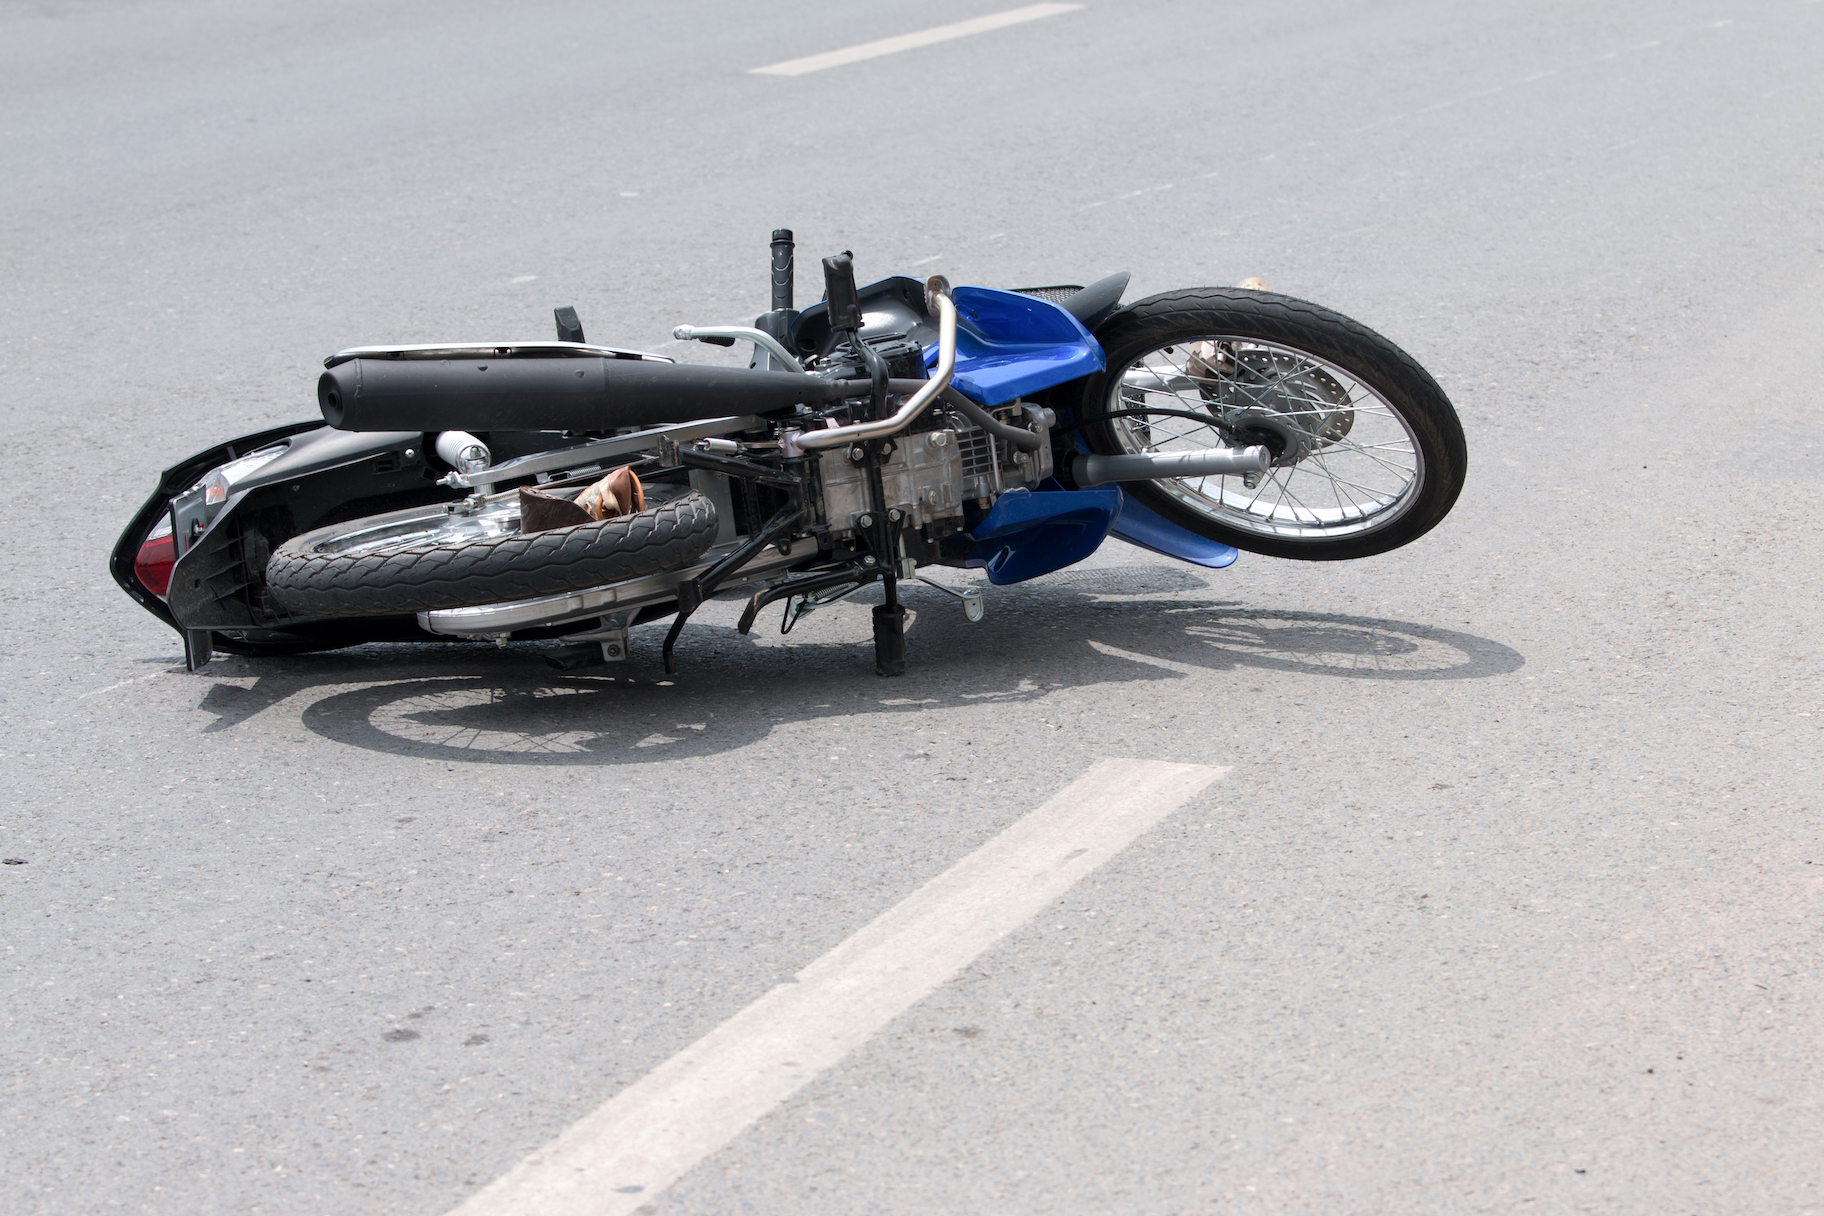 motorcycle-accident-1